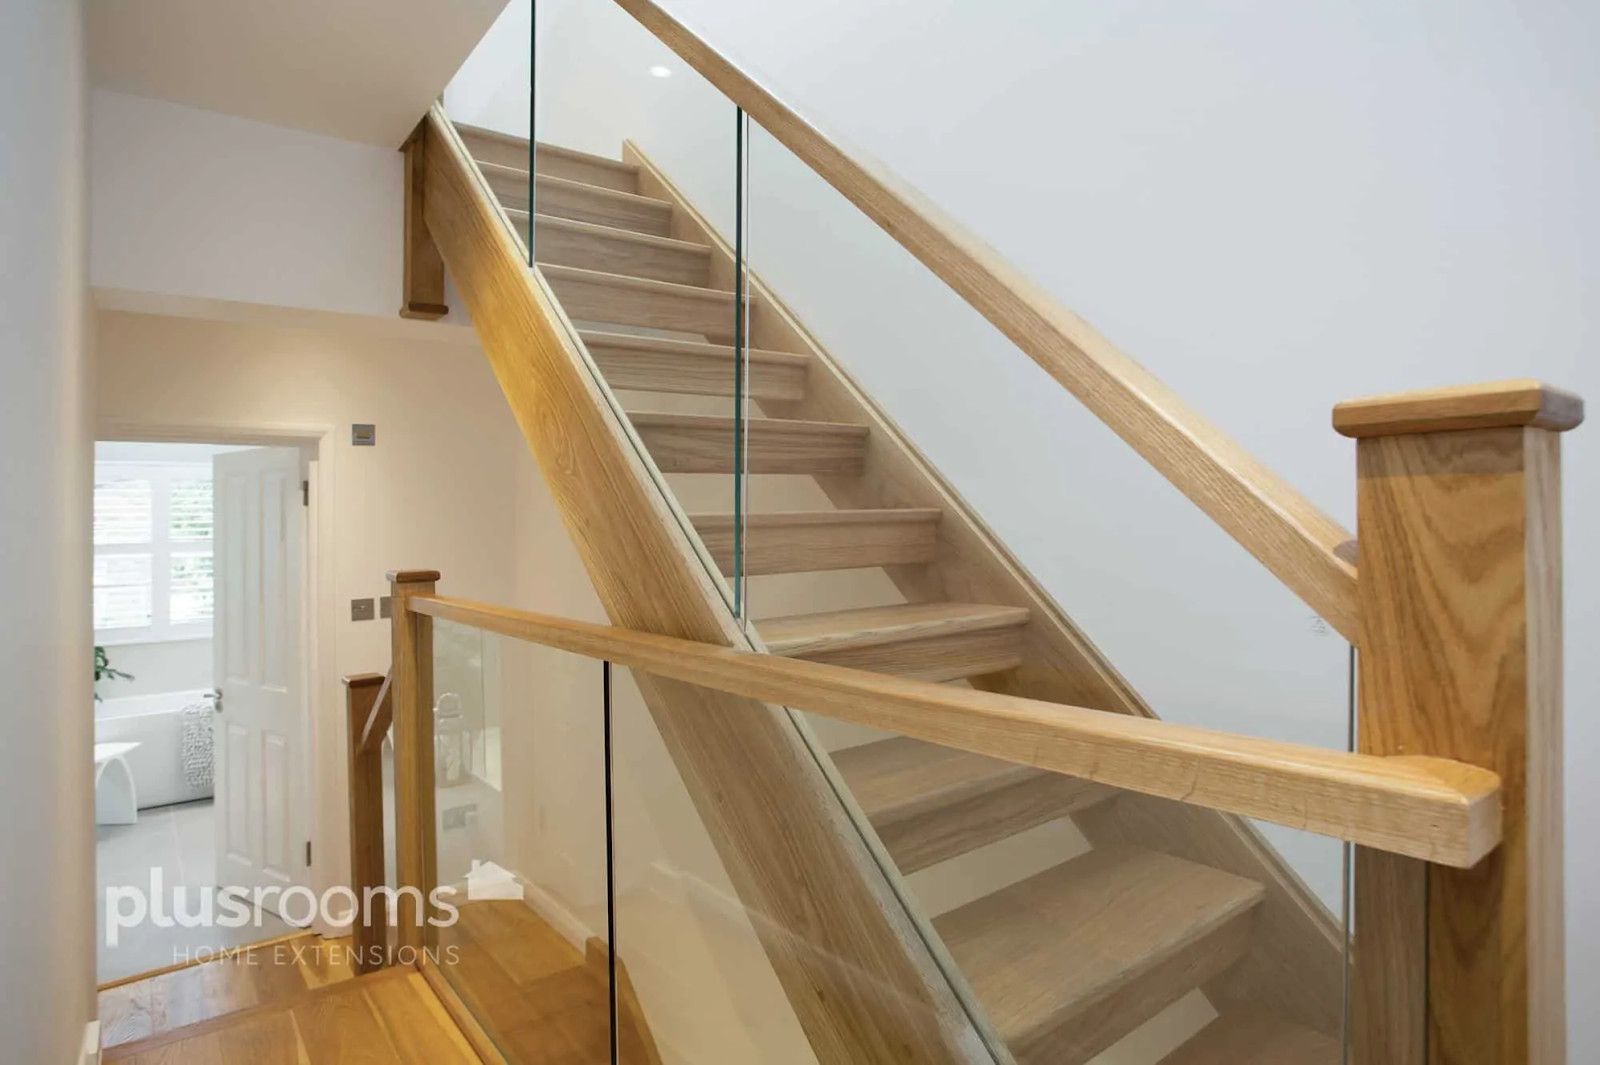 A guide to the different types of stairs for loft conversions